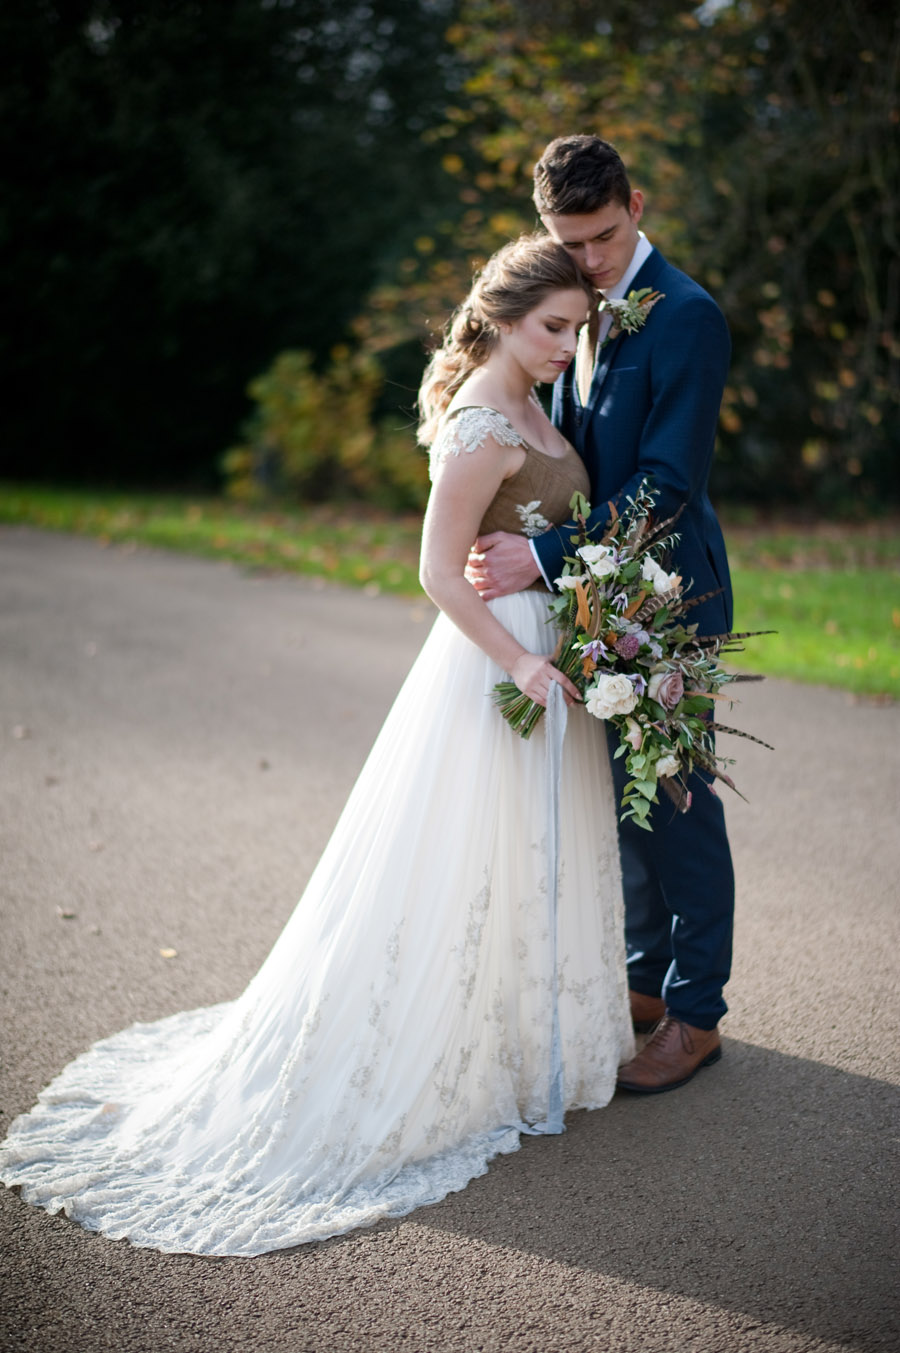 Luxe, modern wedding style ideas by Natalie Hewitt, image credit Rachael Connerton Photography (2)